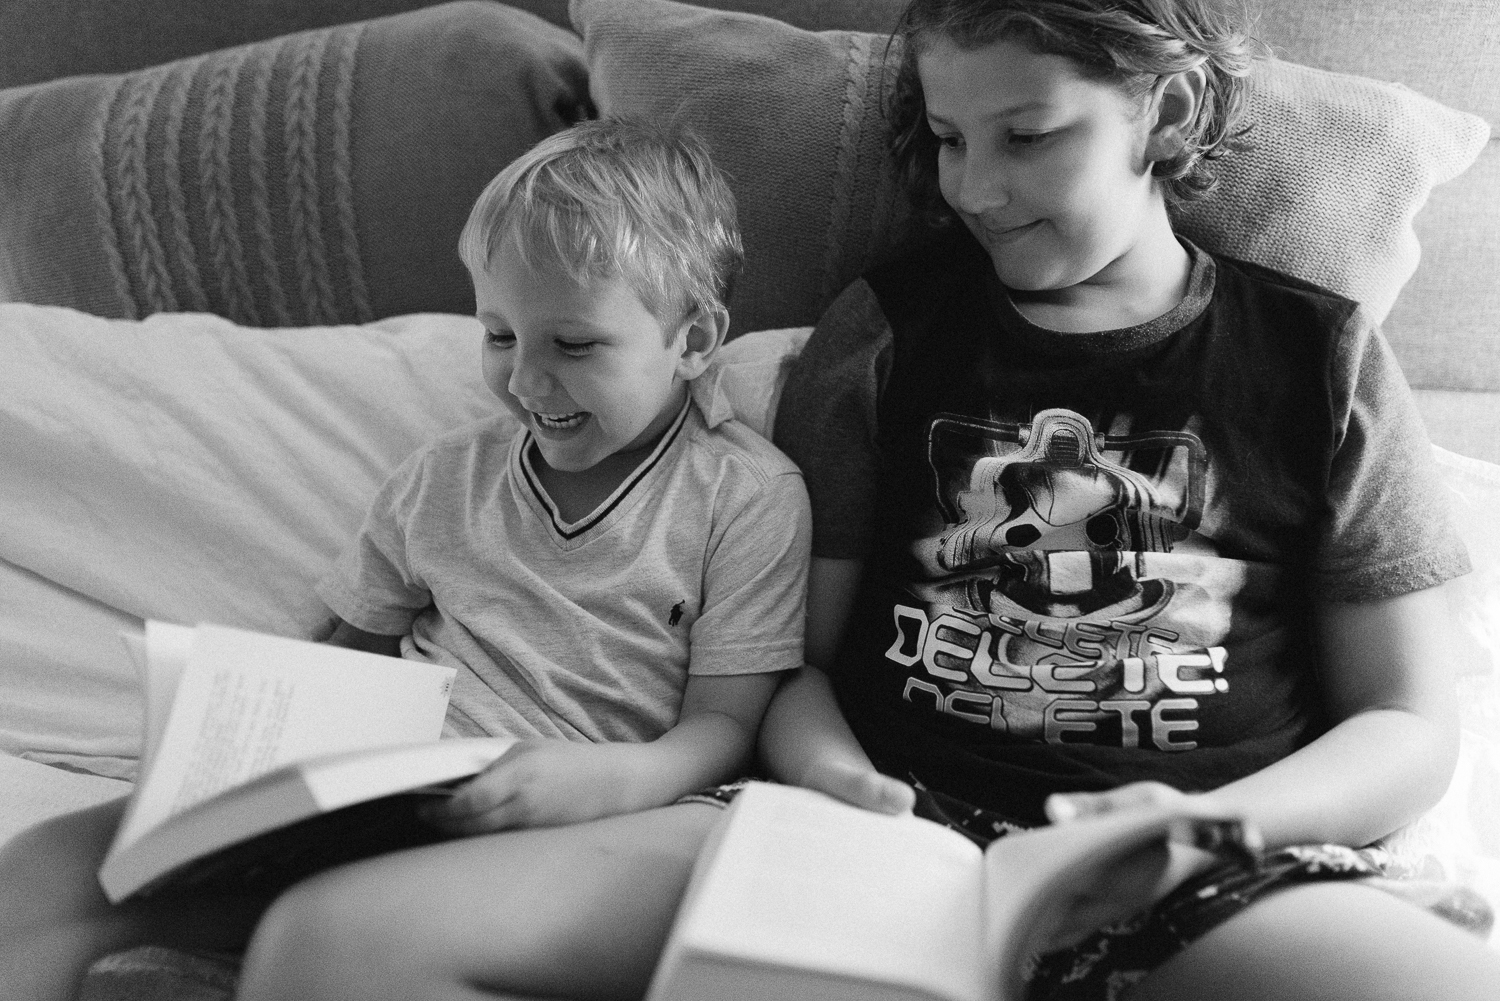 Black and white image of two young brothers reading books together in bed